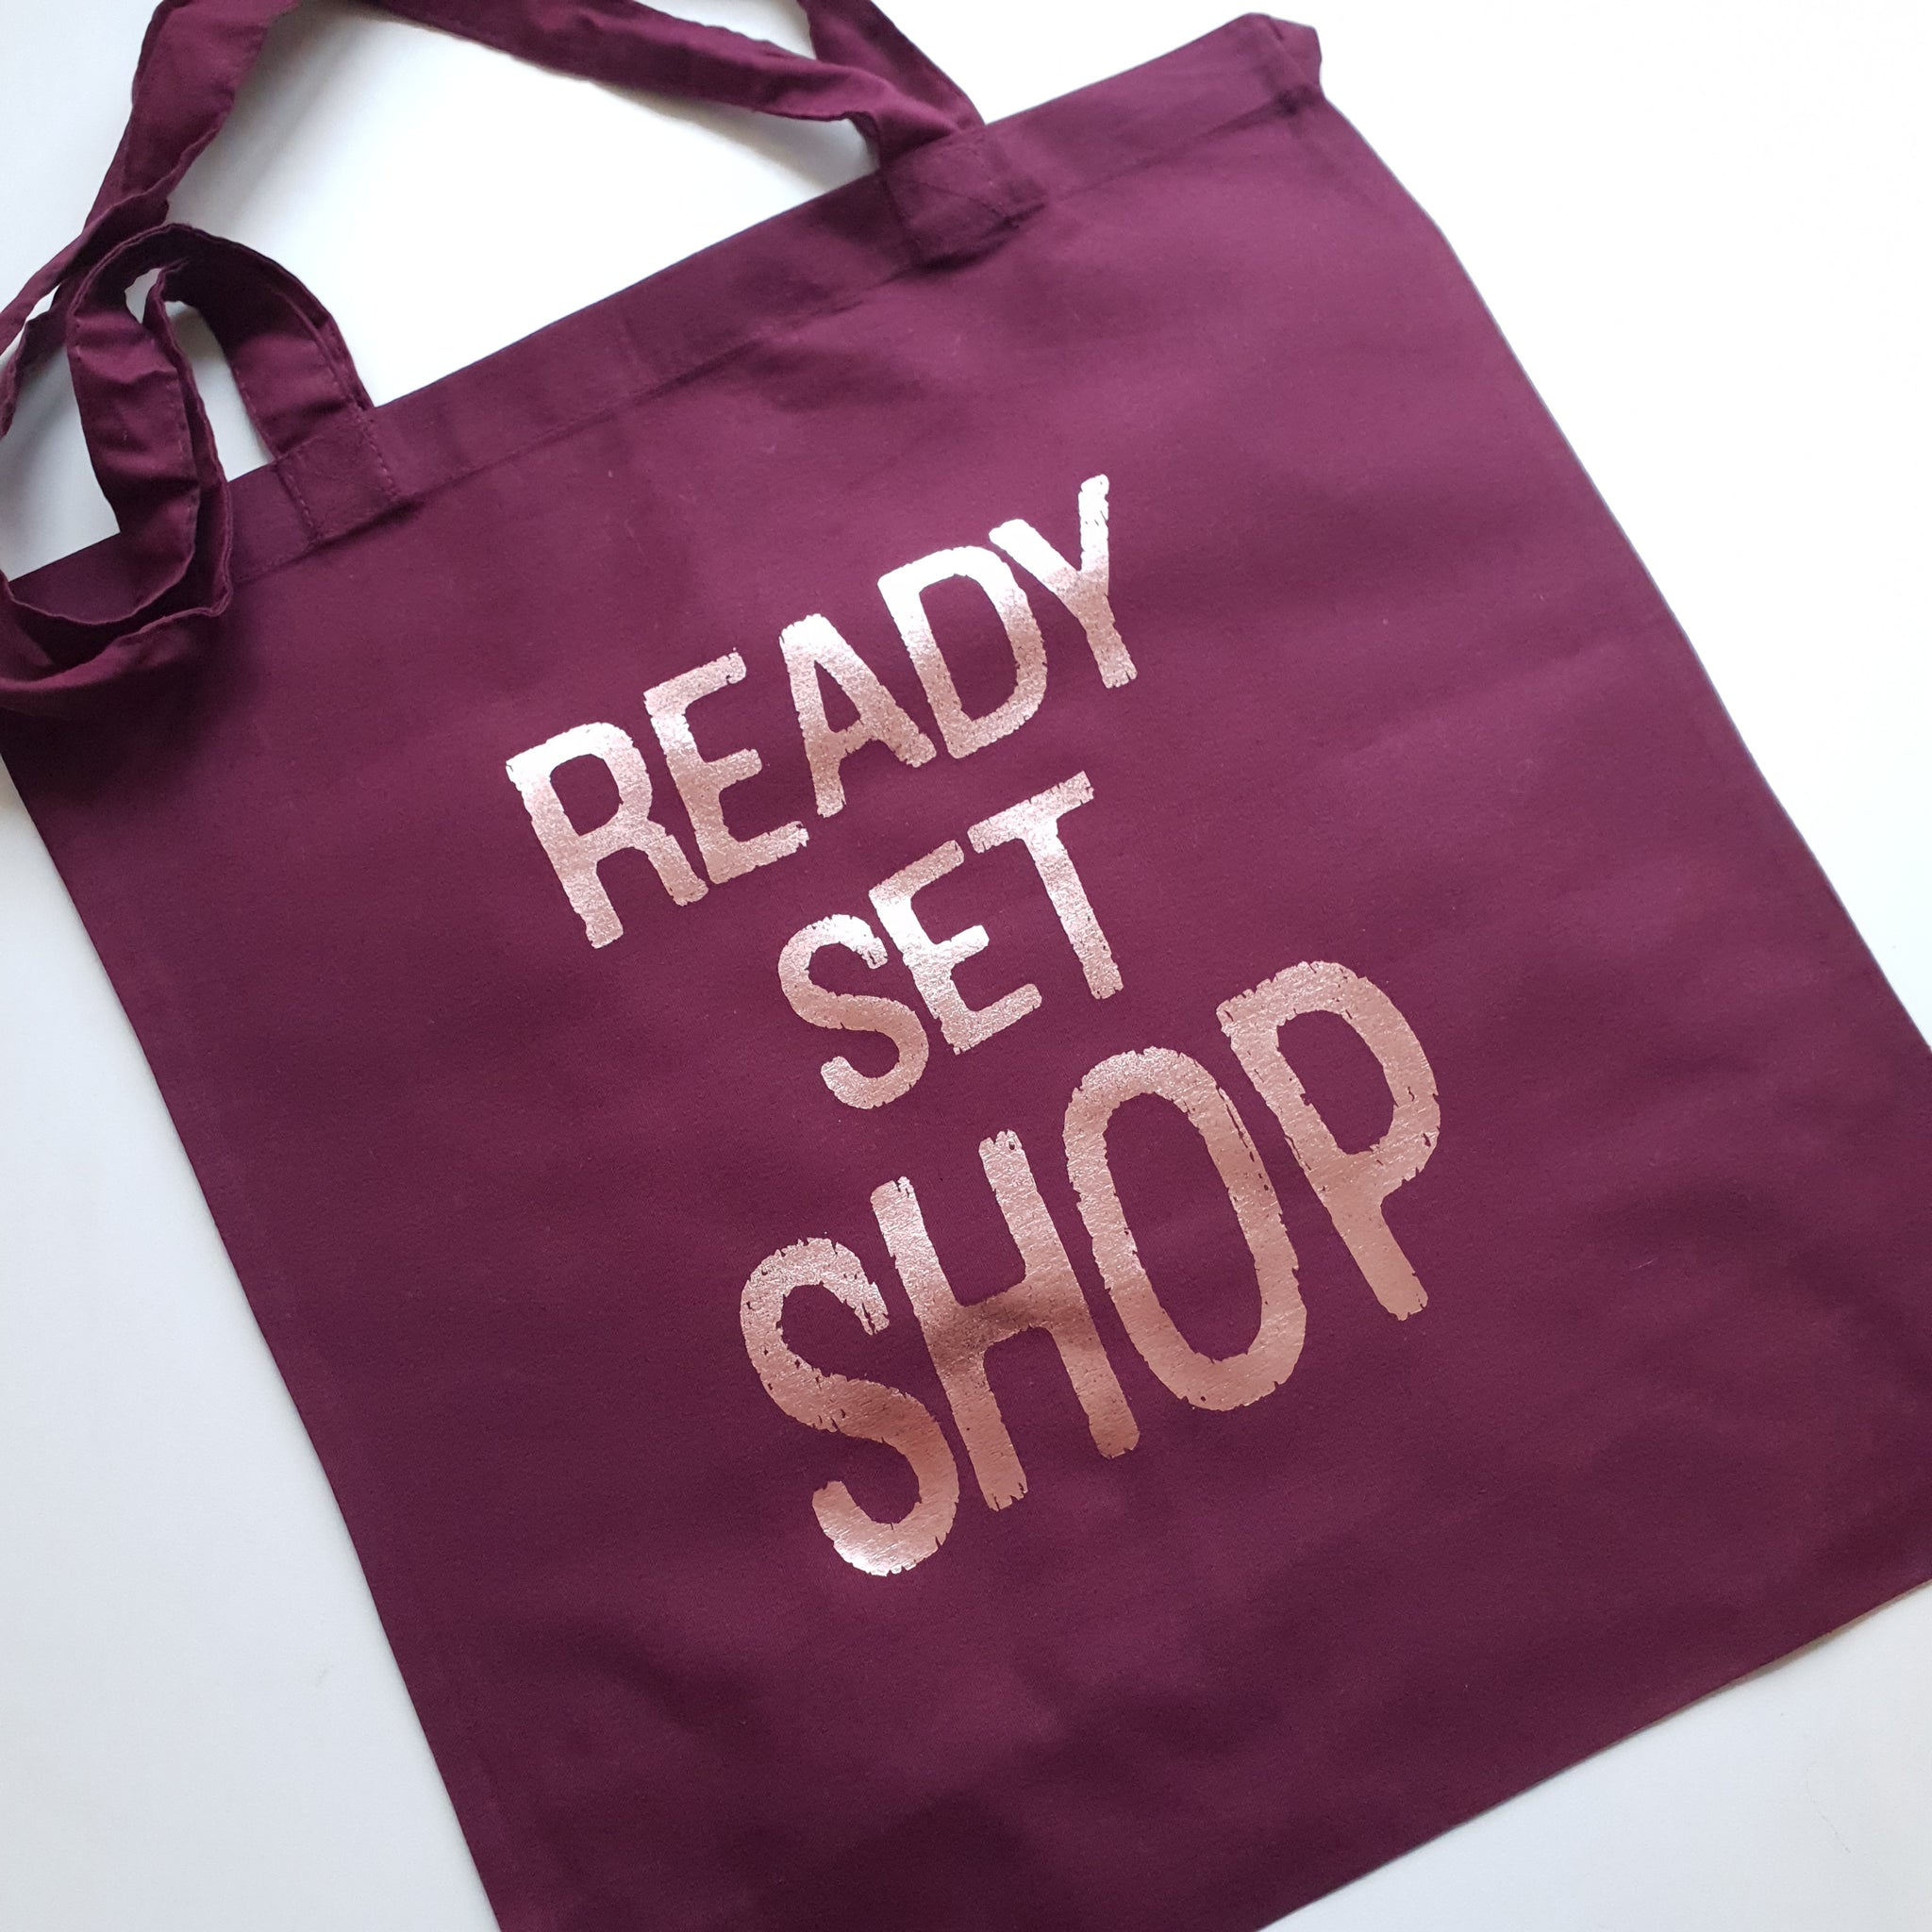 Burgundy tote bag with rose gold ready set shop slogan